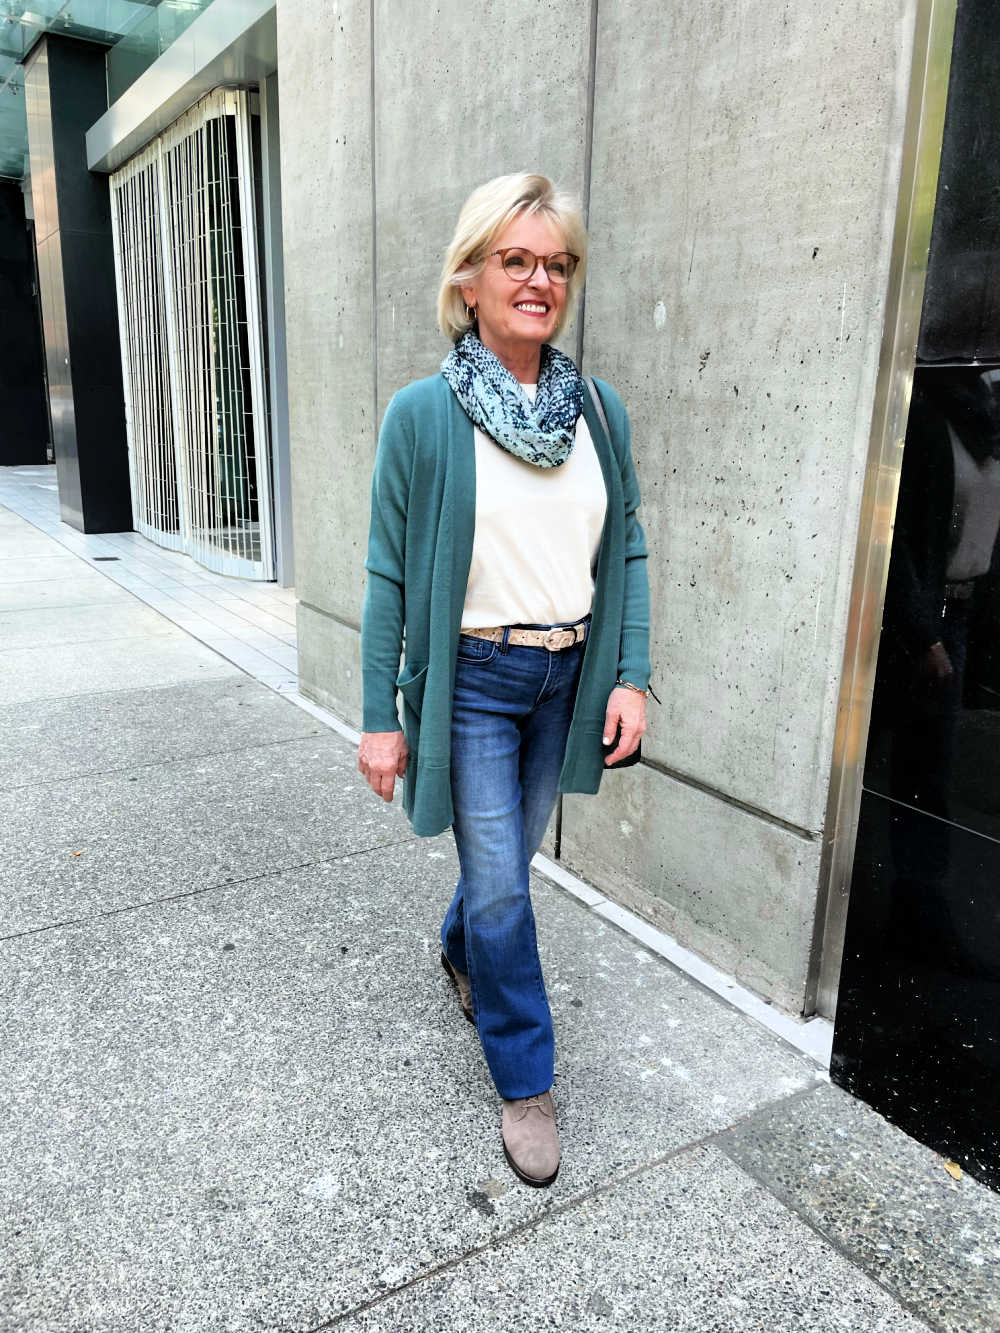 woman walking on strett wearing green cardigan, white tee, and jeans